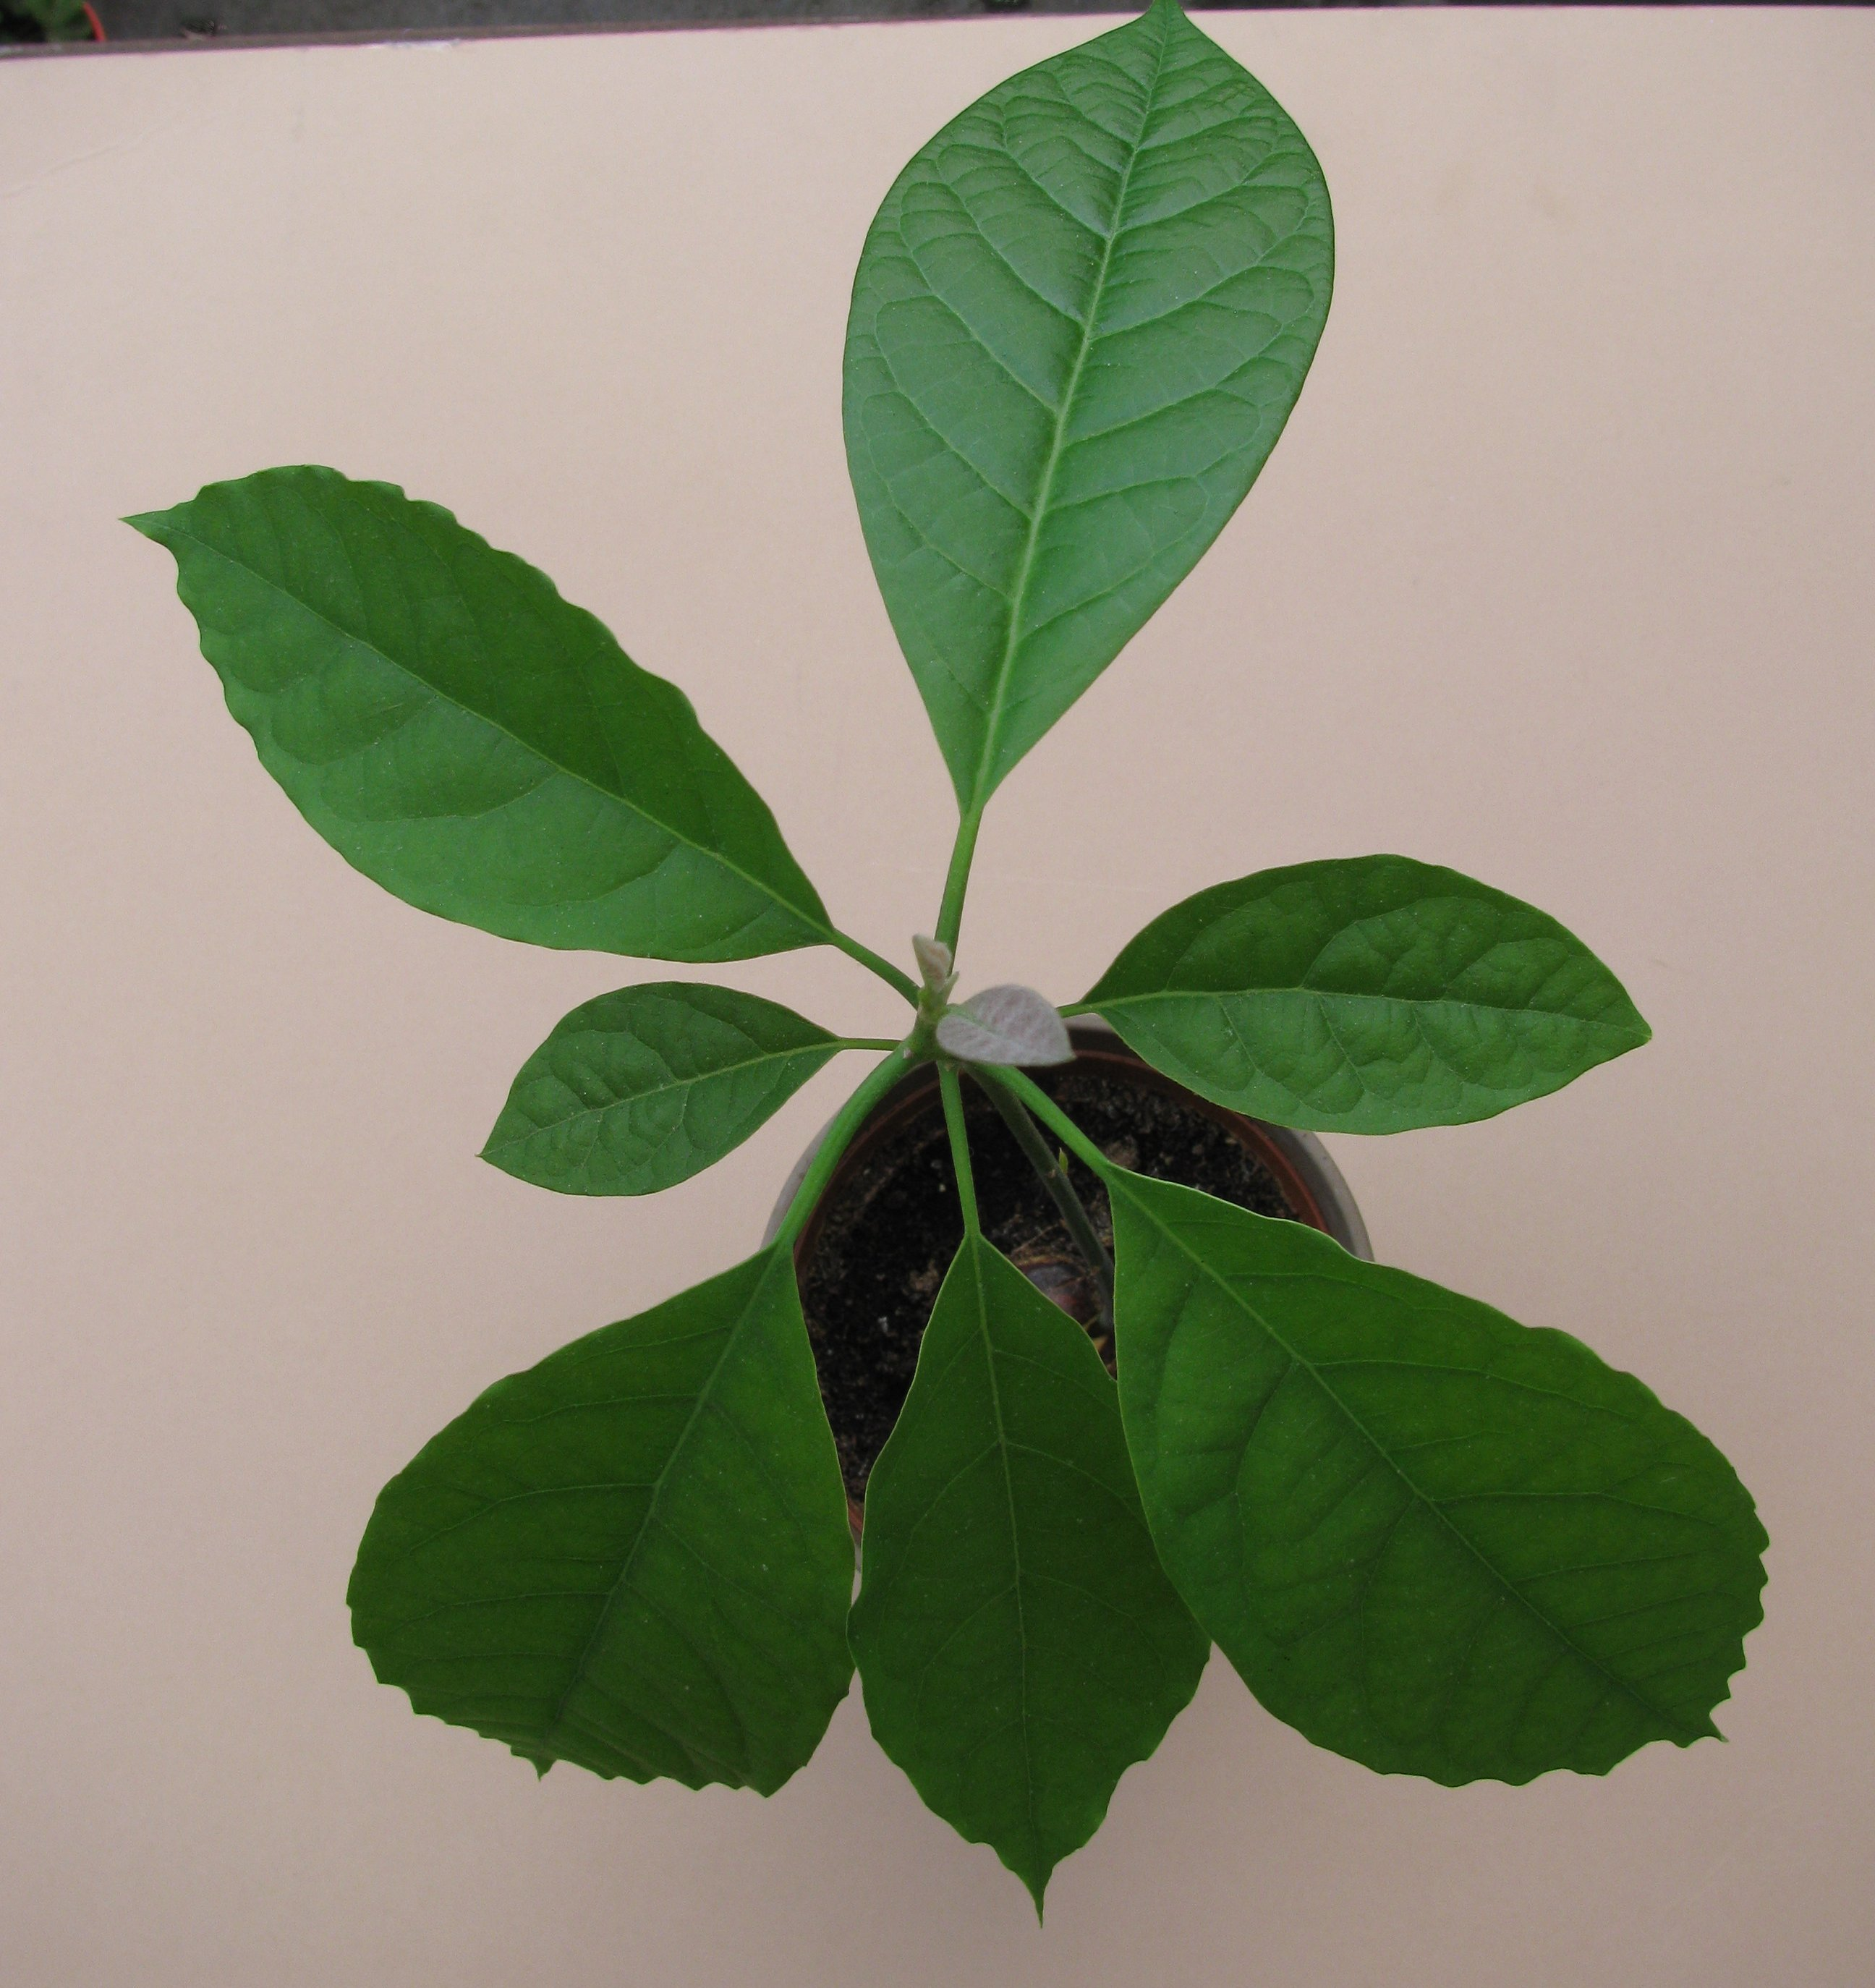 How to grow an avocado plant from a seed red darter for Grow your own avocado tree from seed